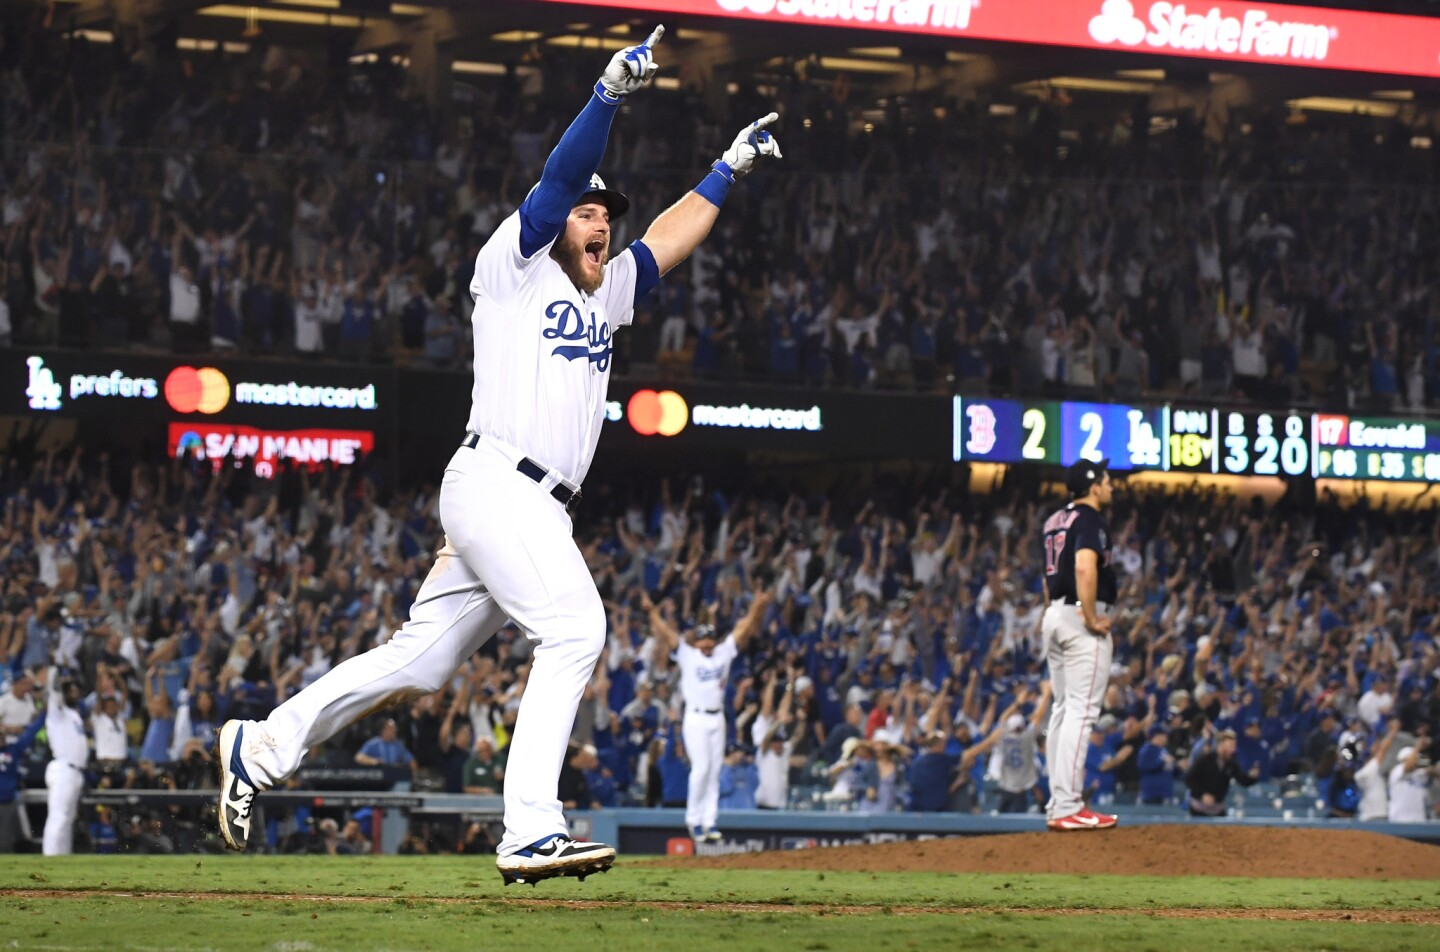 Dodgers Max Muncy hits the game-winning home run against the Red Sox in the bottom of the 18th inning.